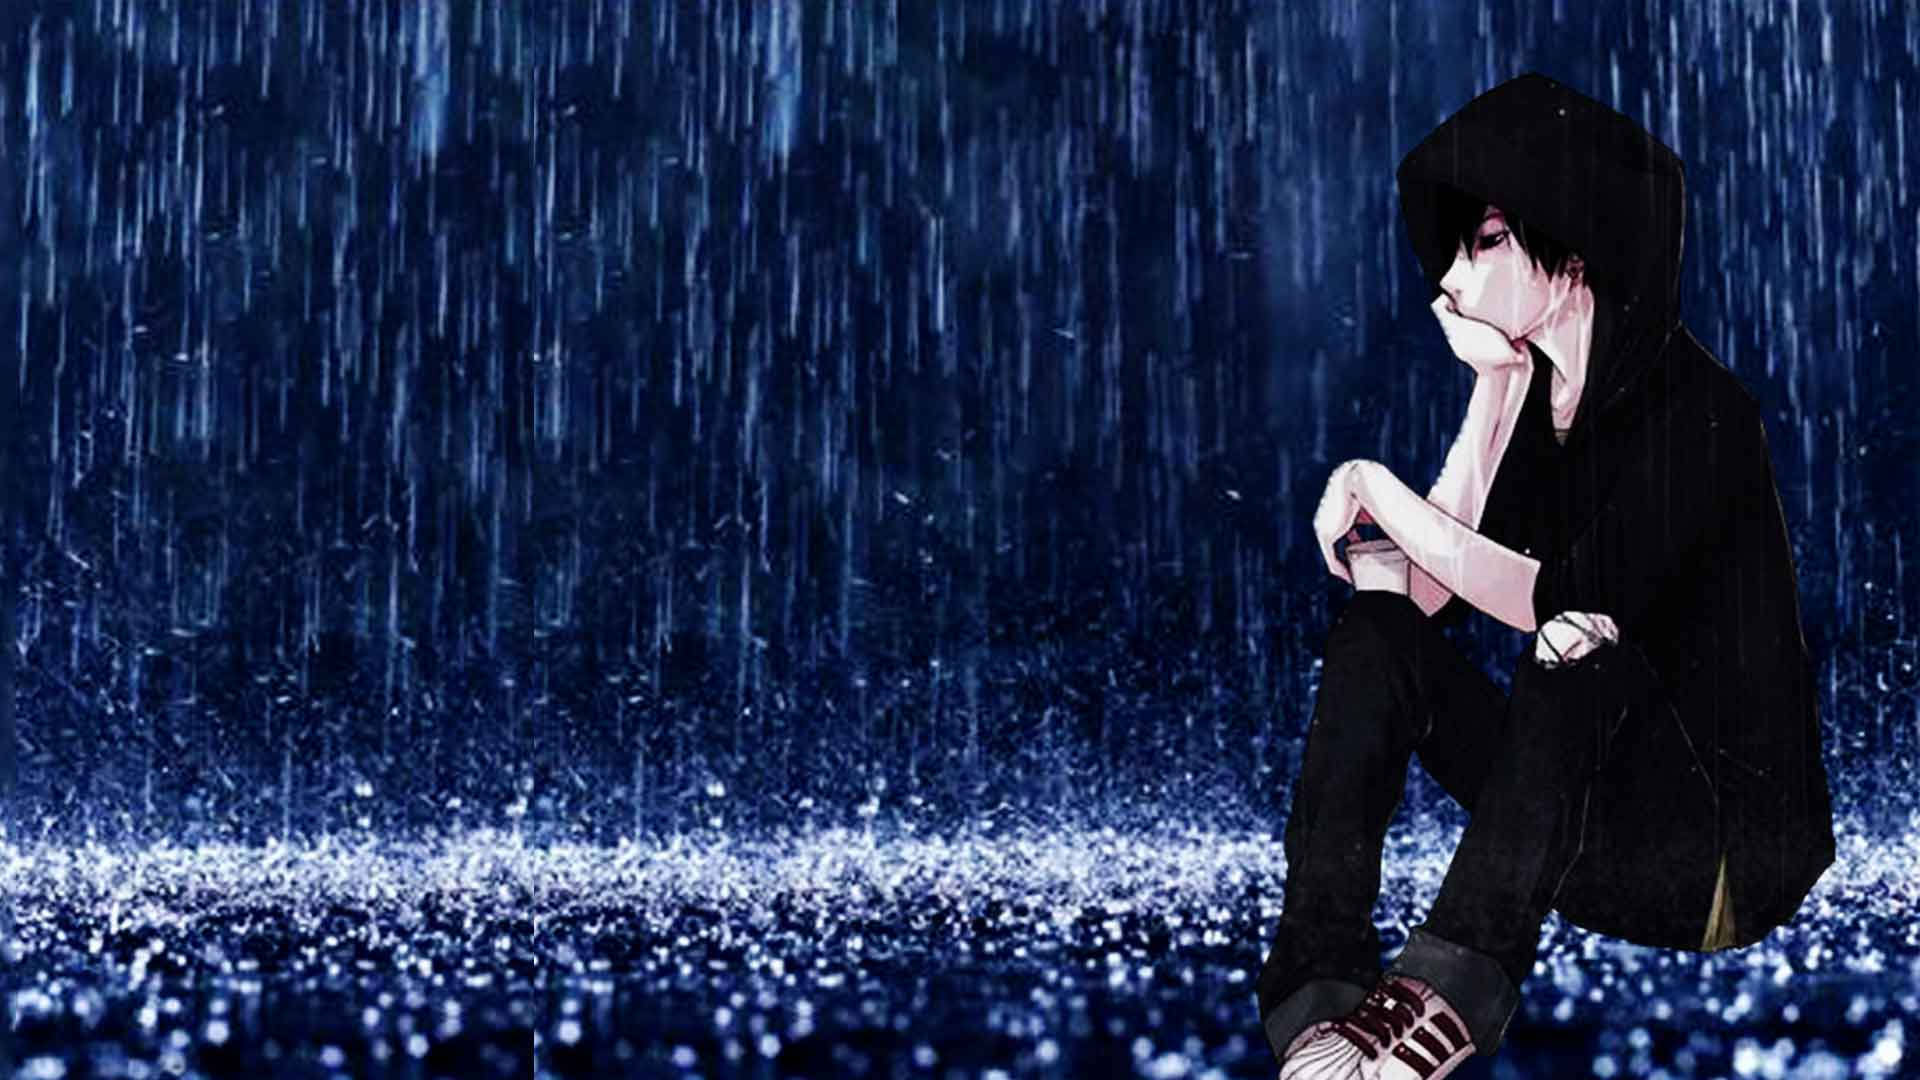 anime sad wallpaper - sf wallpaper